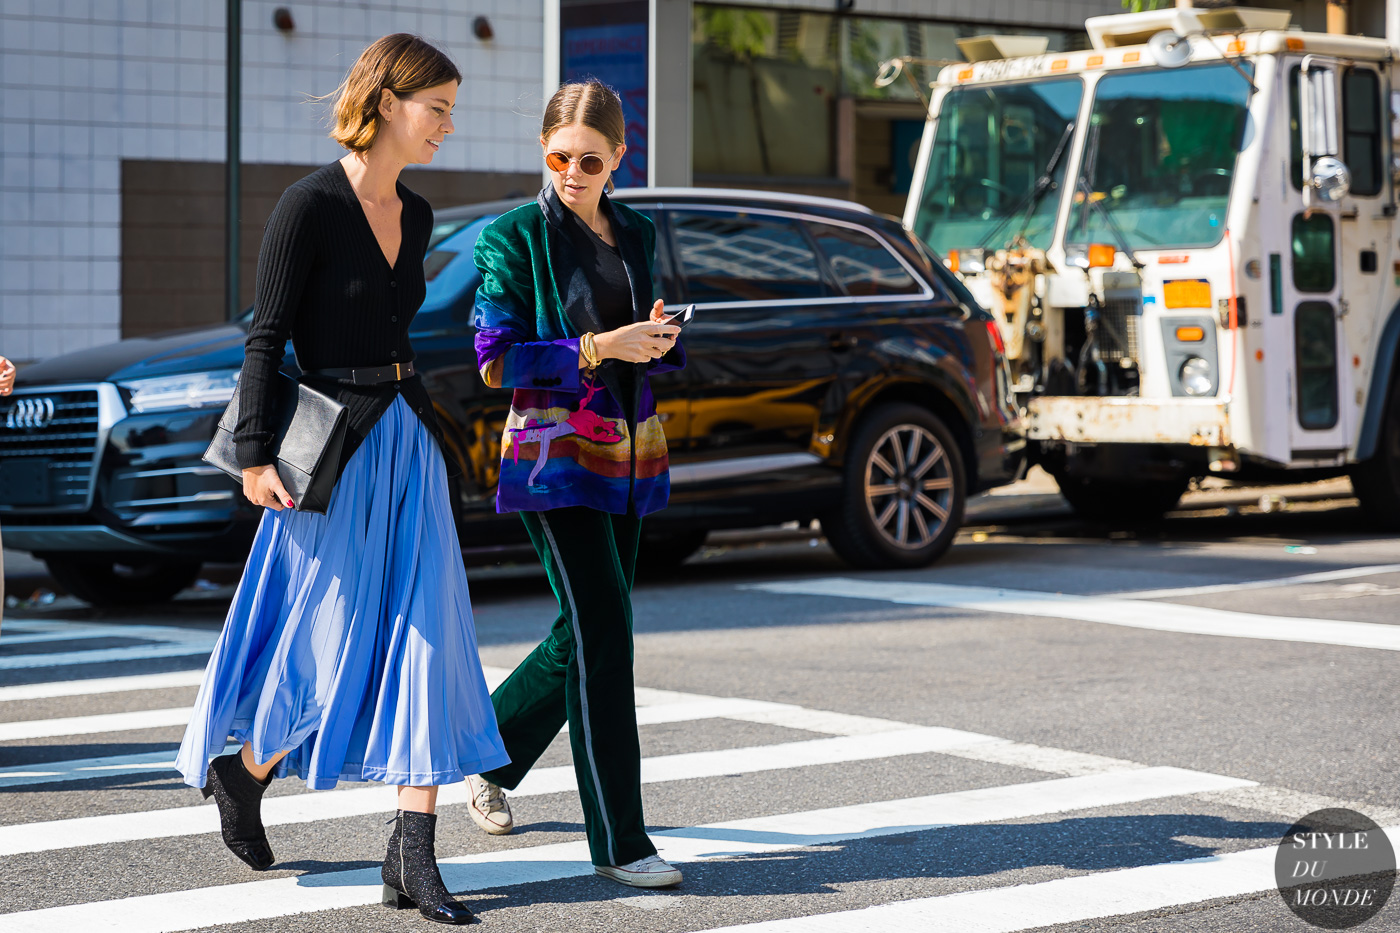 Image for New York SS 2018 Street Style: Annina Mislin and Megan Bowman Gray